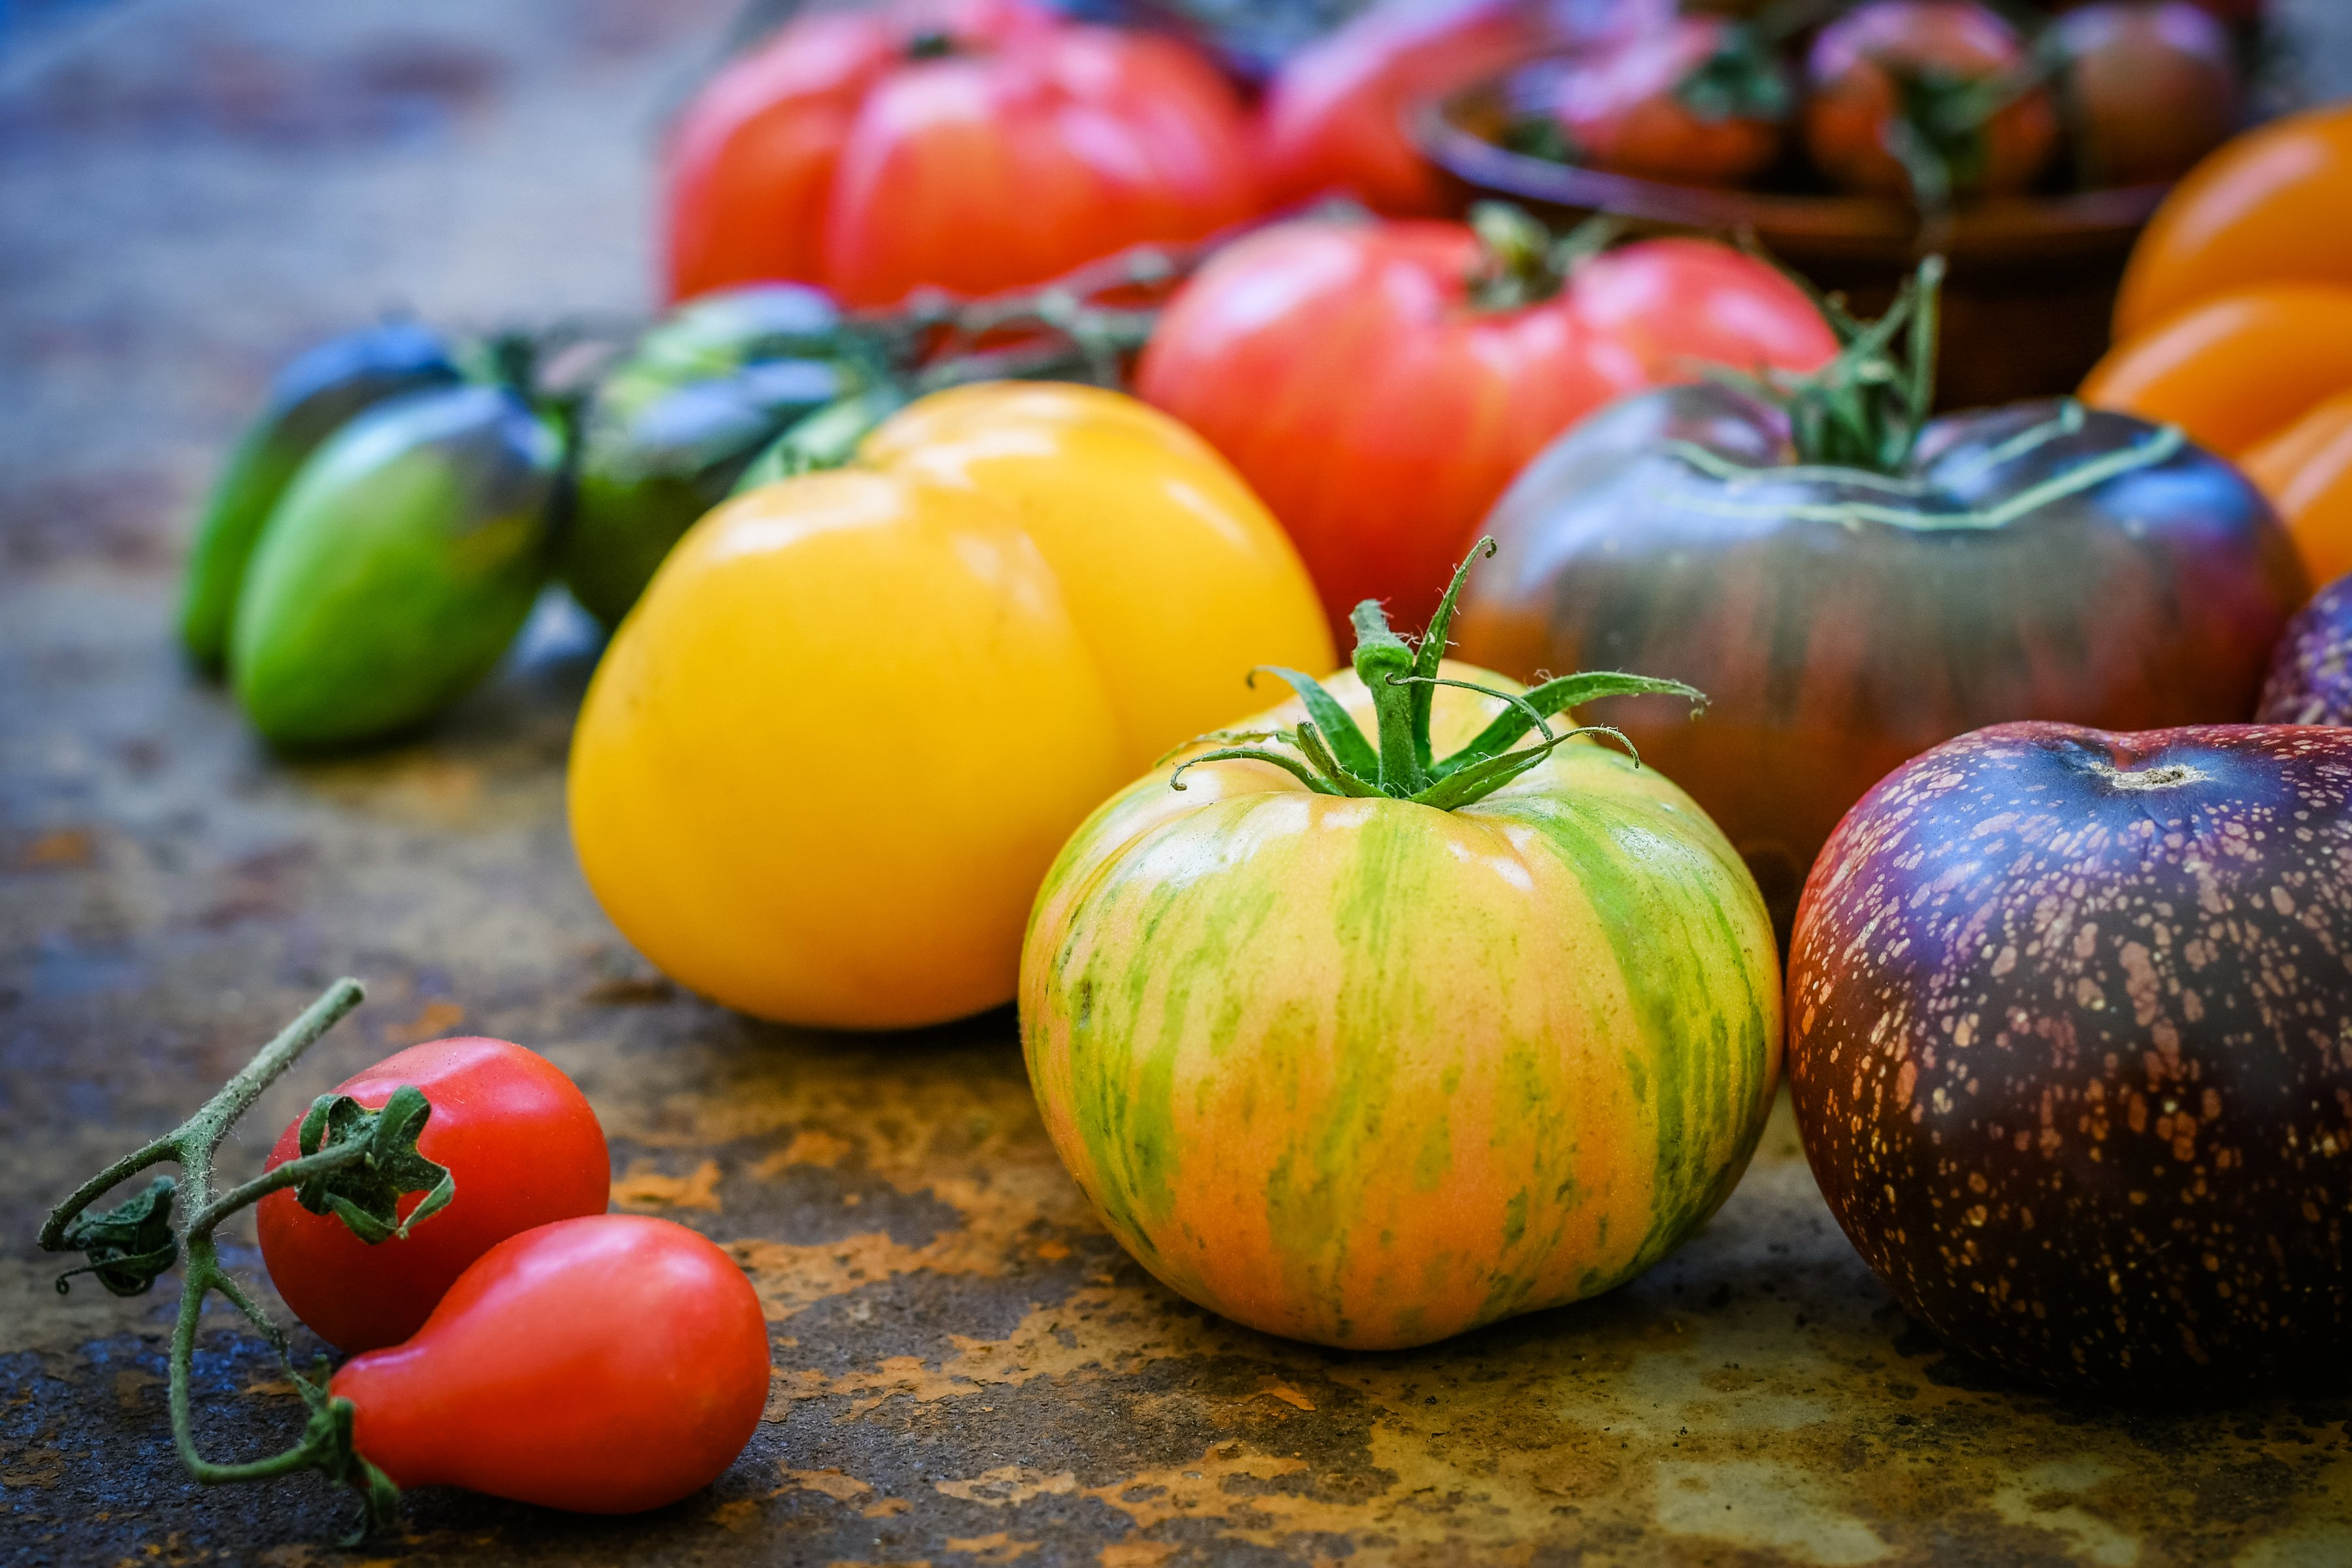 Colorful heirloom tomatoes on a table.